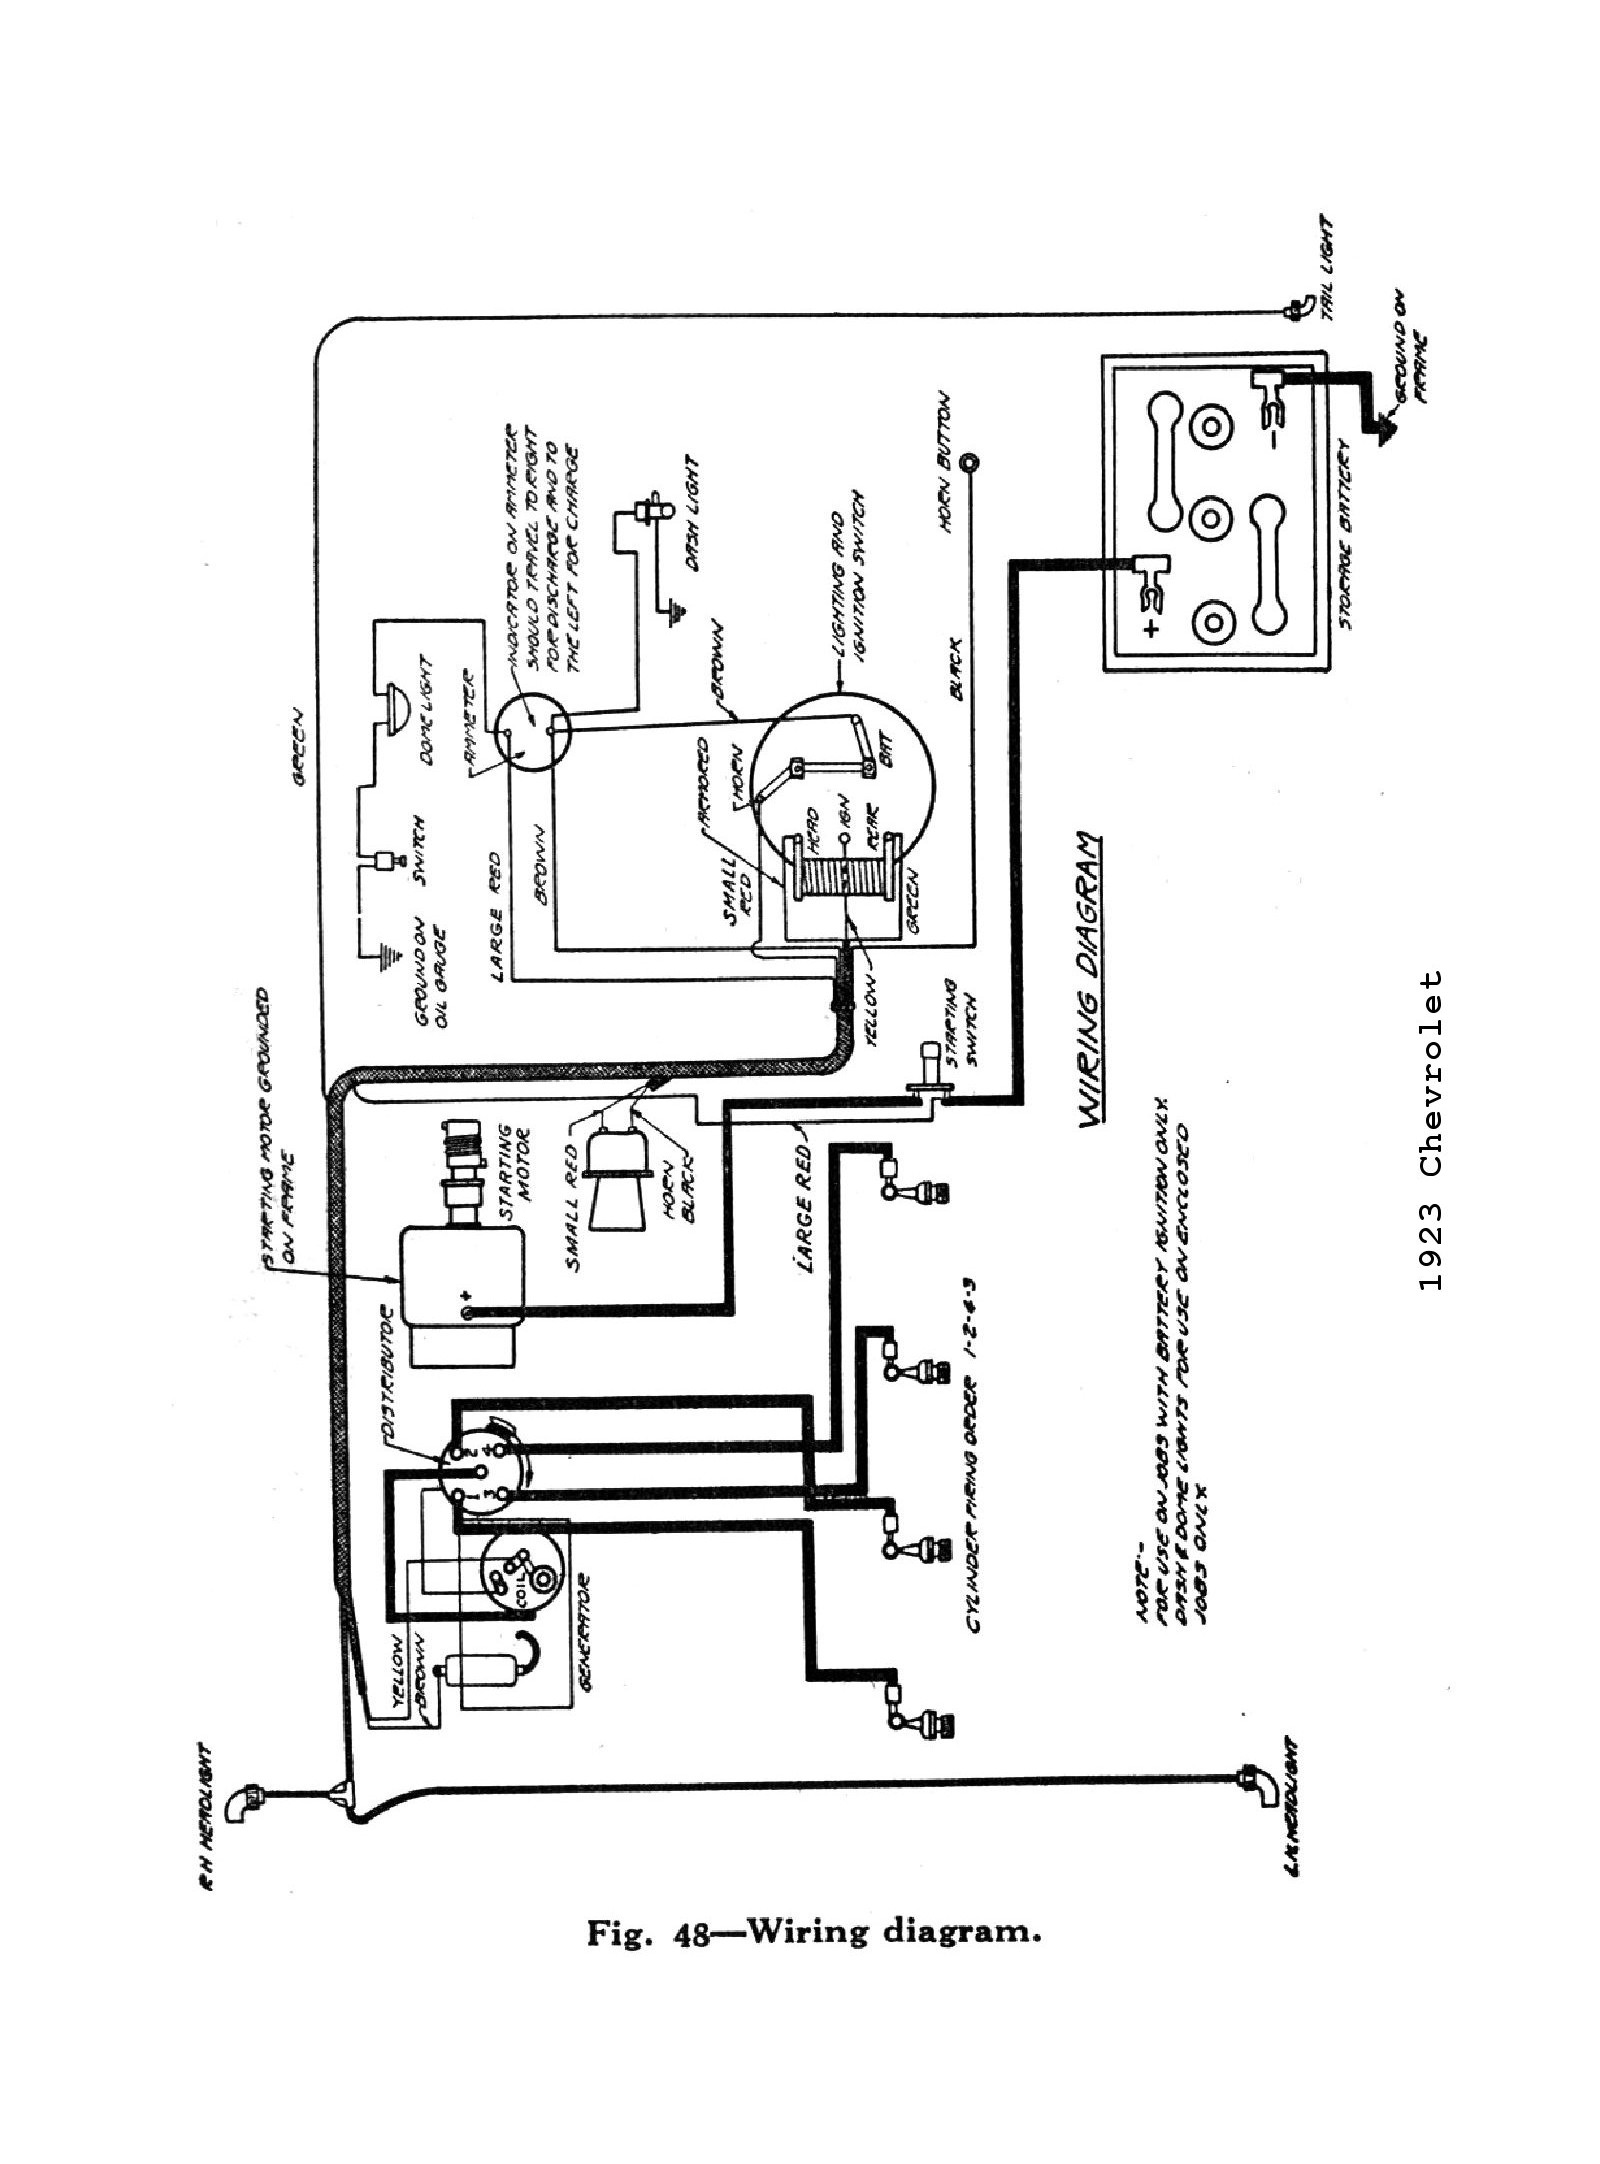 chevy wiring diagram 36 chevy wiring diagrams ez go wiring diagram 36 volt motor pdf